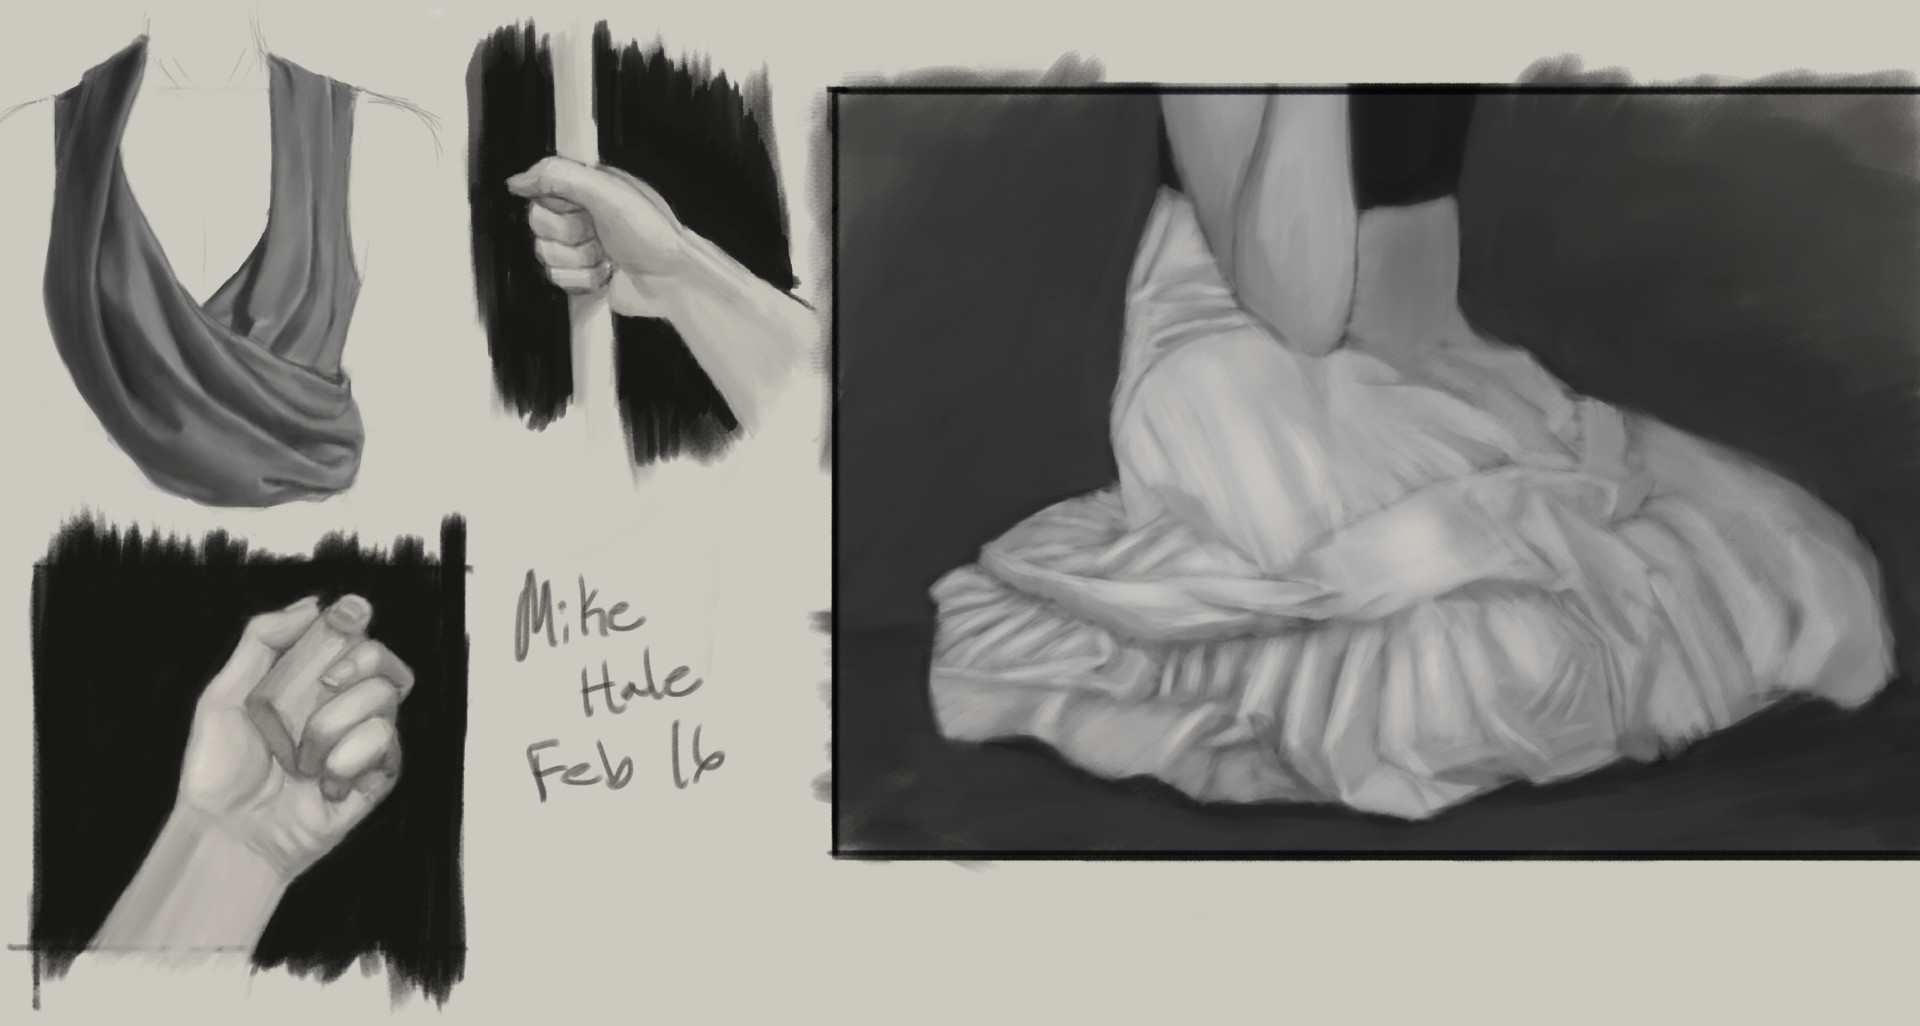 Mike hale studies da 002